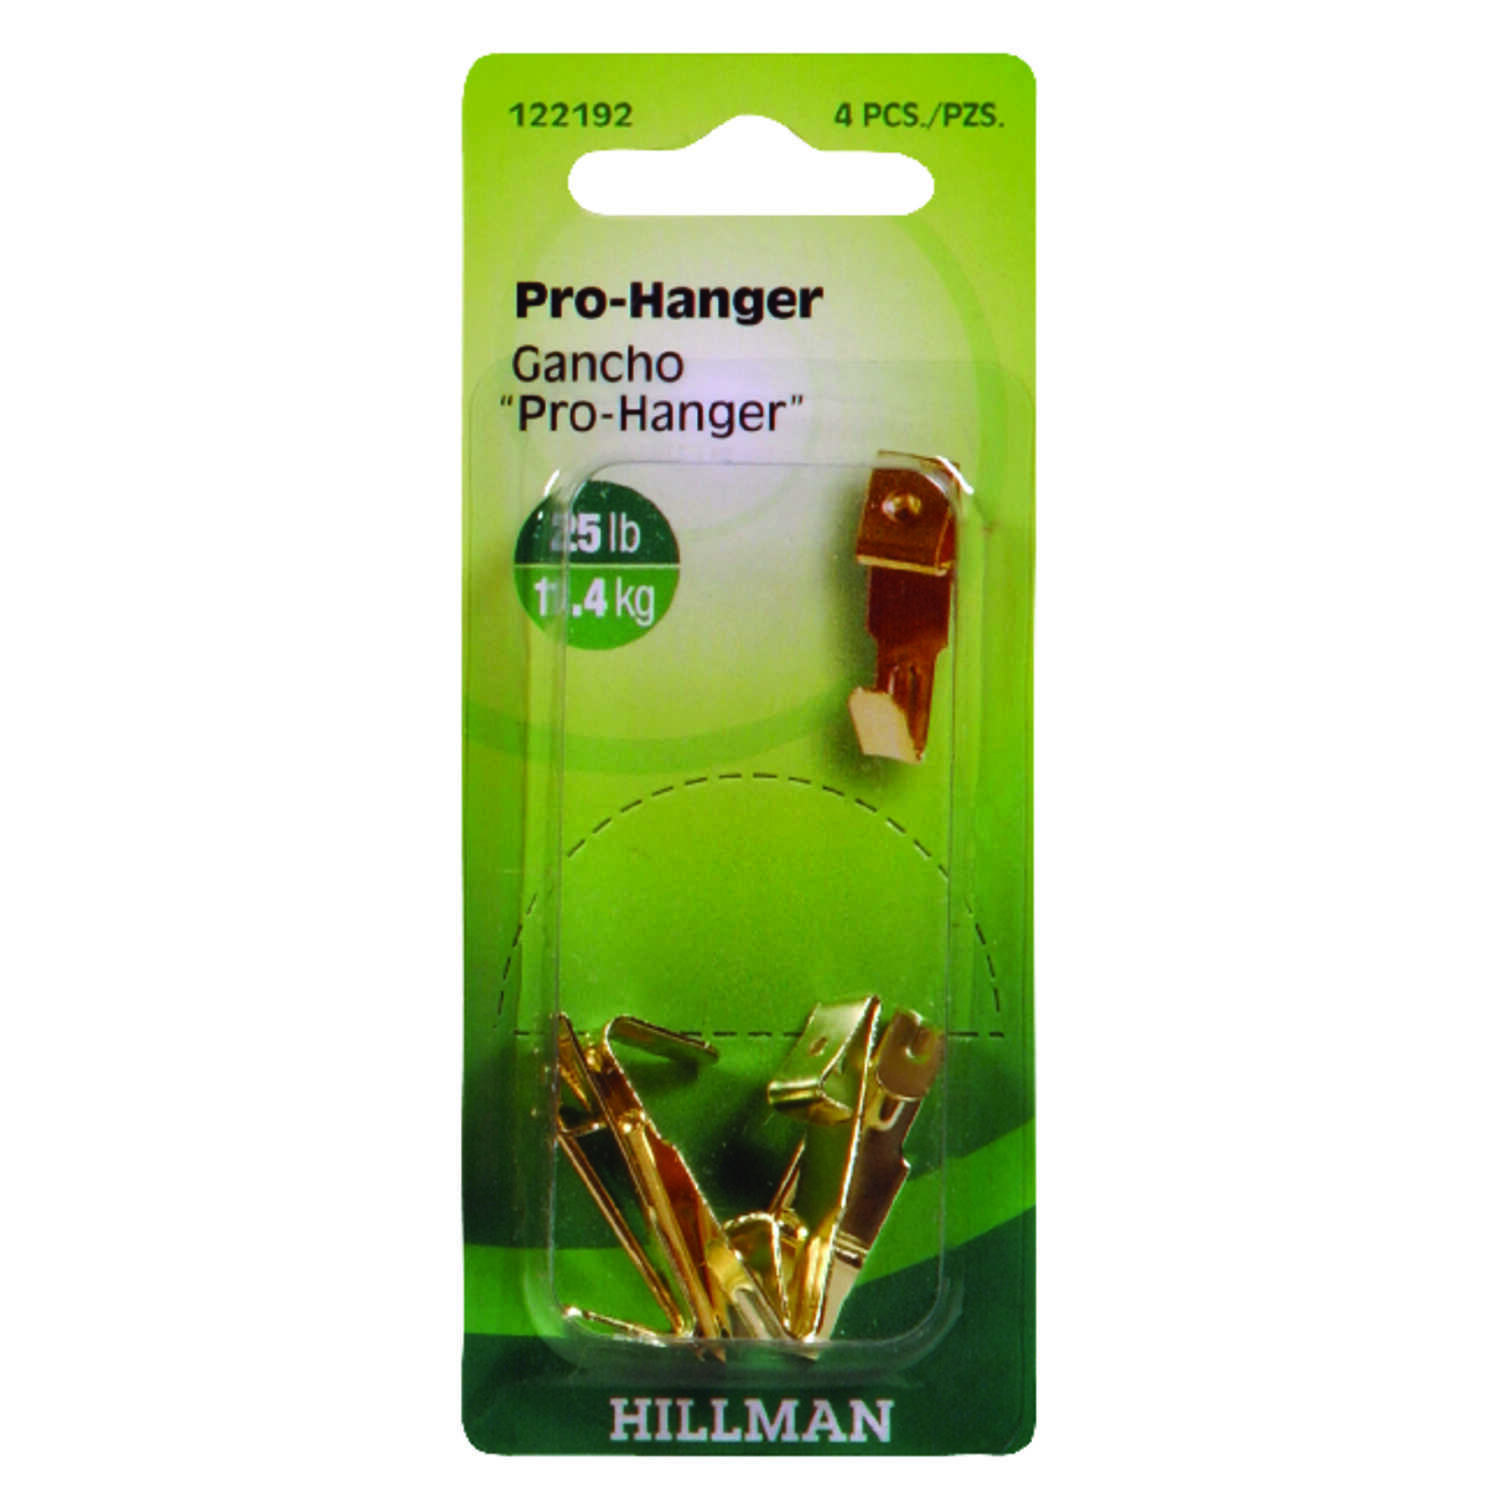 HILLMAN  AnchorWire  Brass-Plated  Gold  Brass  Professional  25 lb. 4 pk Picture Hanger